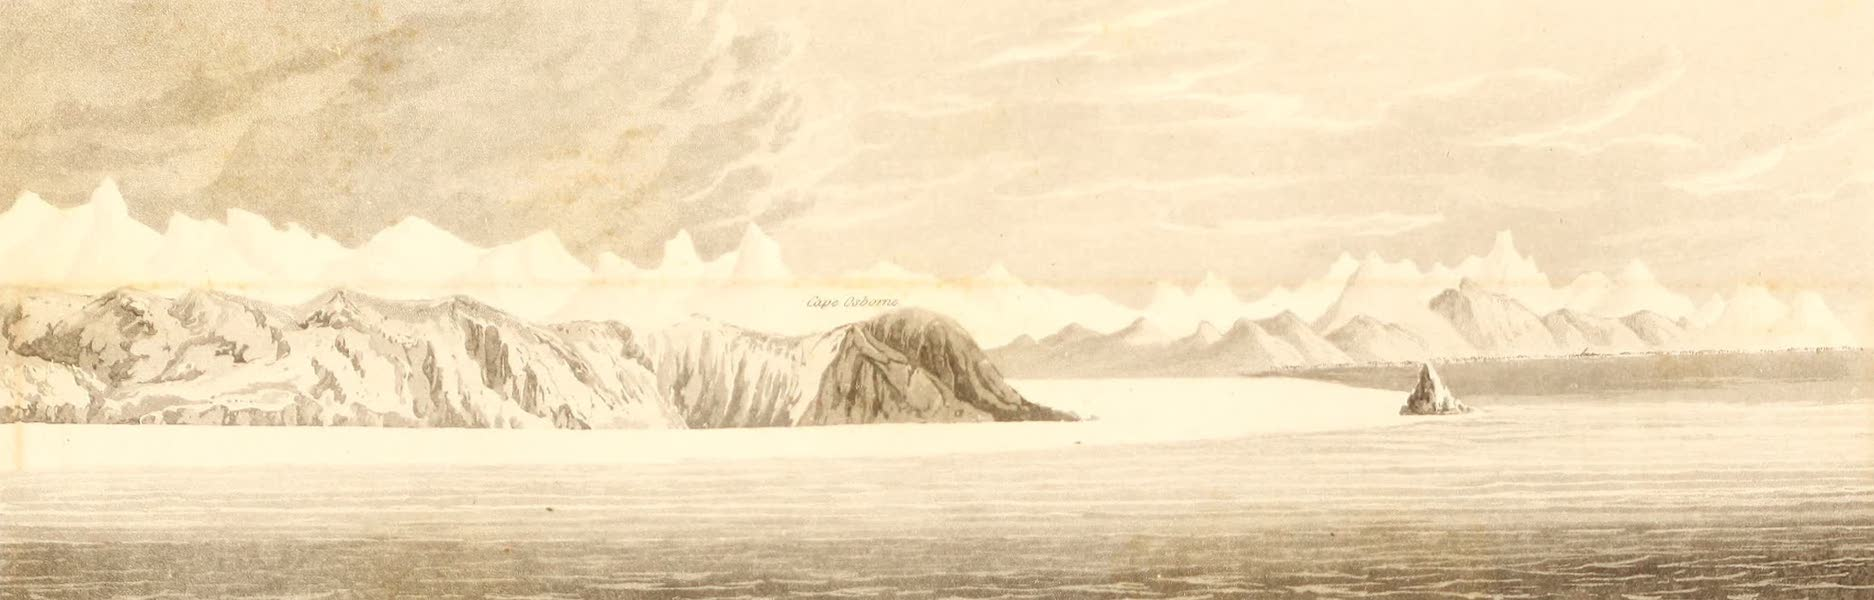 A Voyage of Discovery - Sir George Hope's Monument and Land, on the North side of Lancaster Bay (1819)